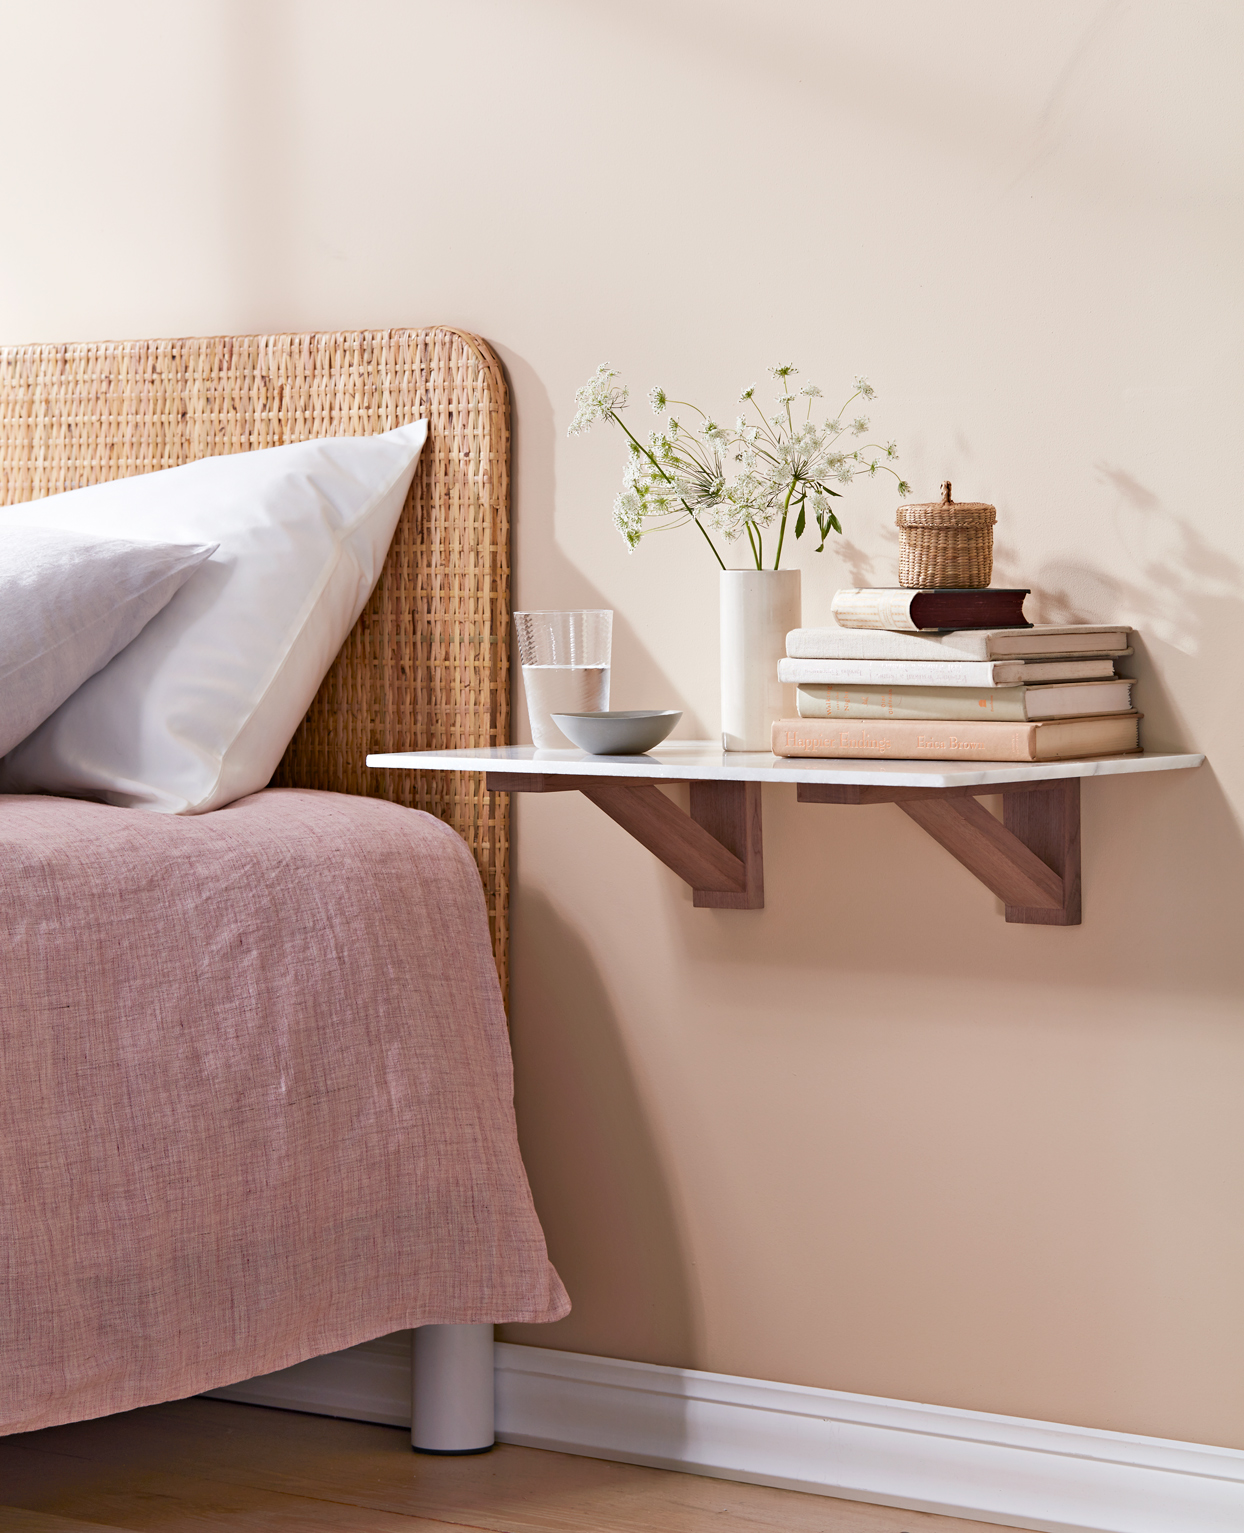 Instant bedroom shelving